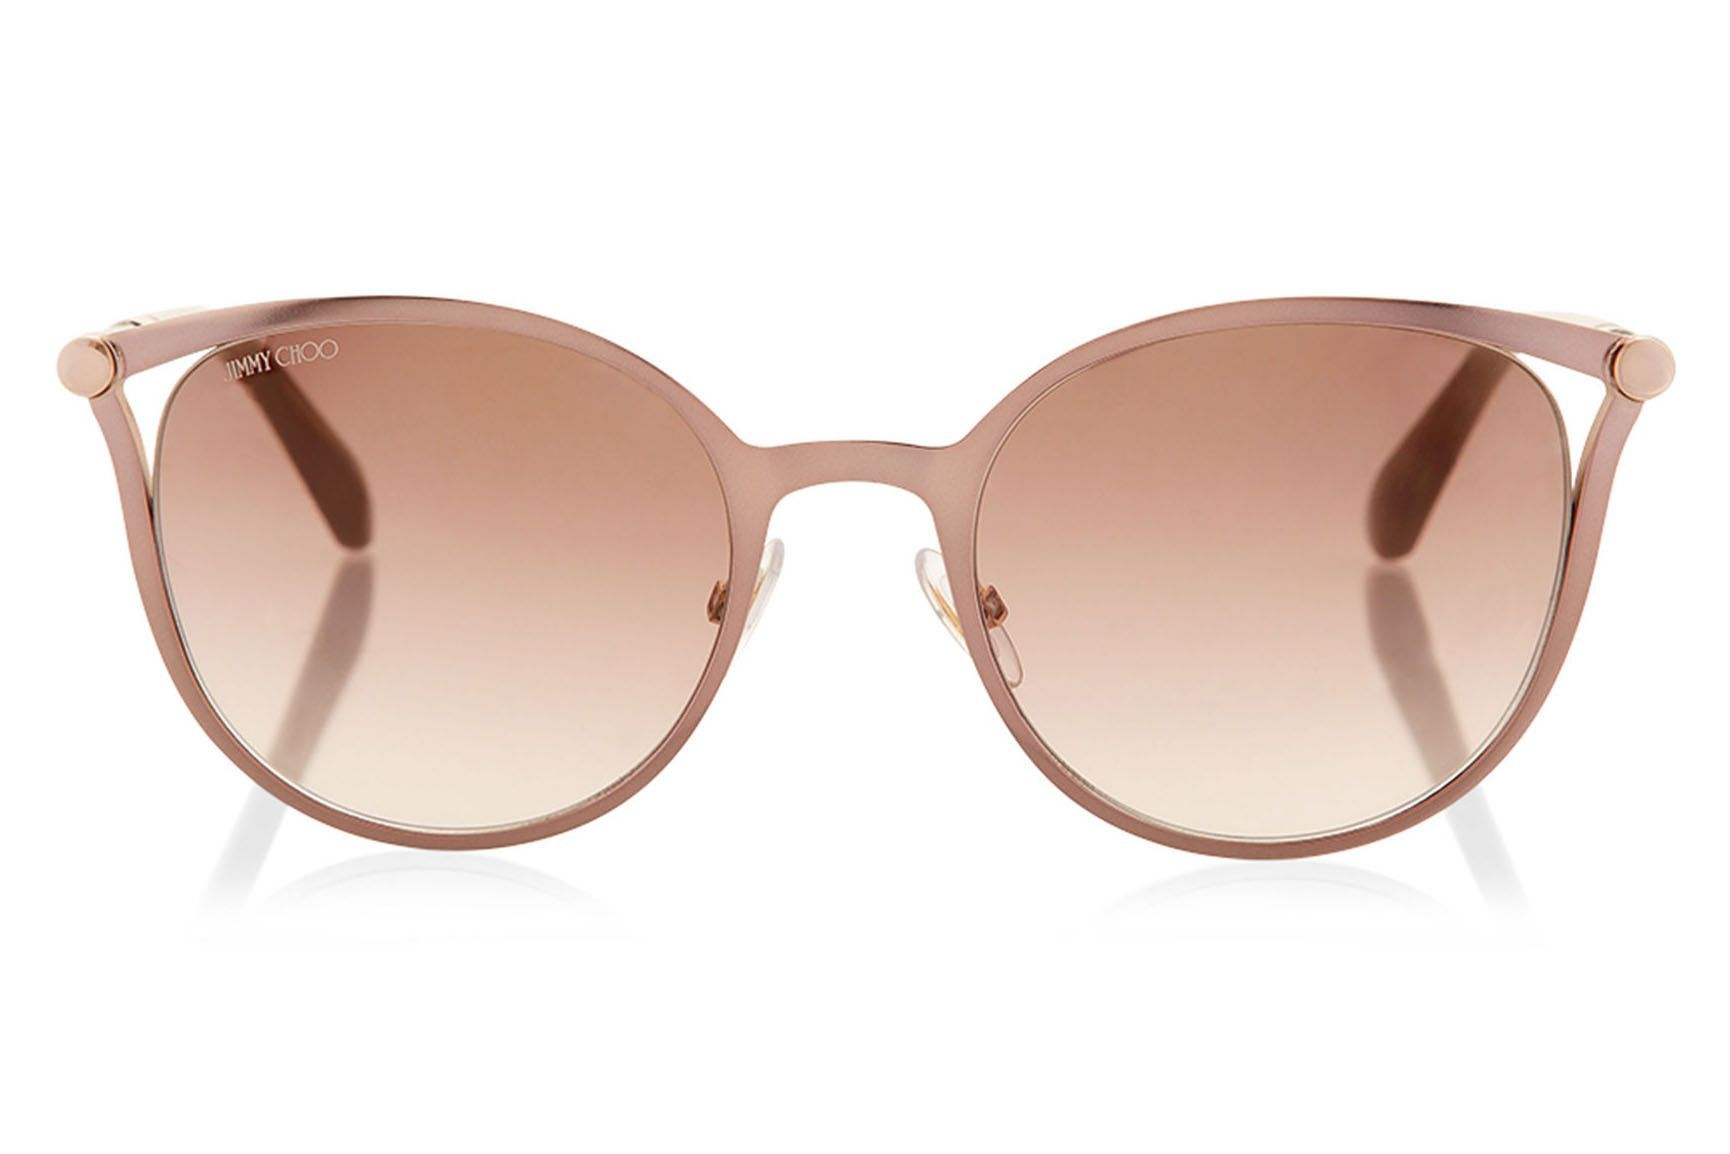 9142e8a35e7 Jimmy Choo - Neiza Brown Rose Gold Cat-Eye Sunglasses